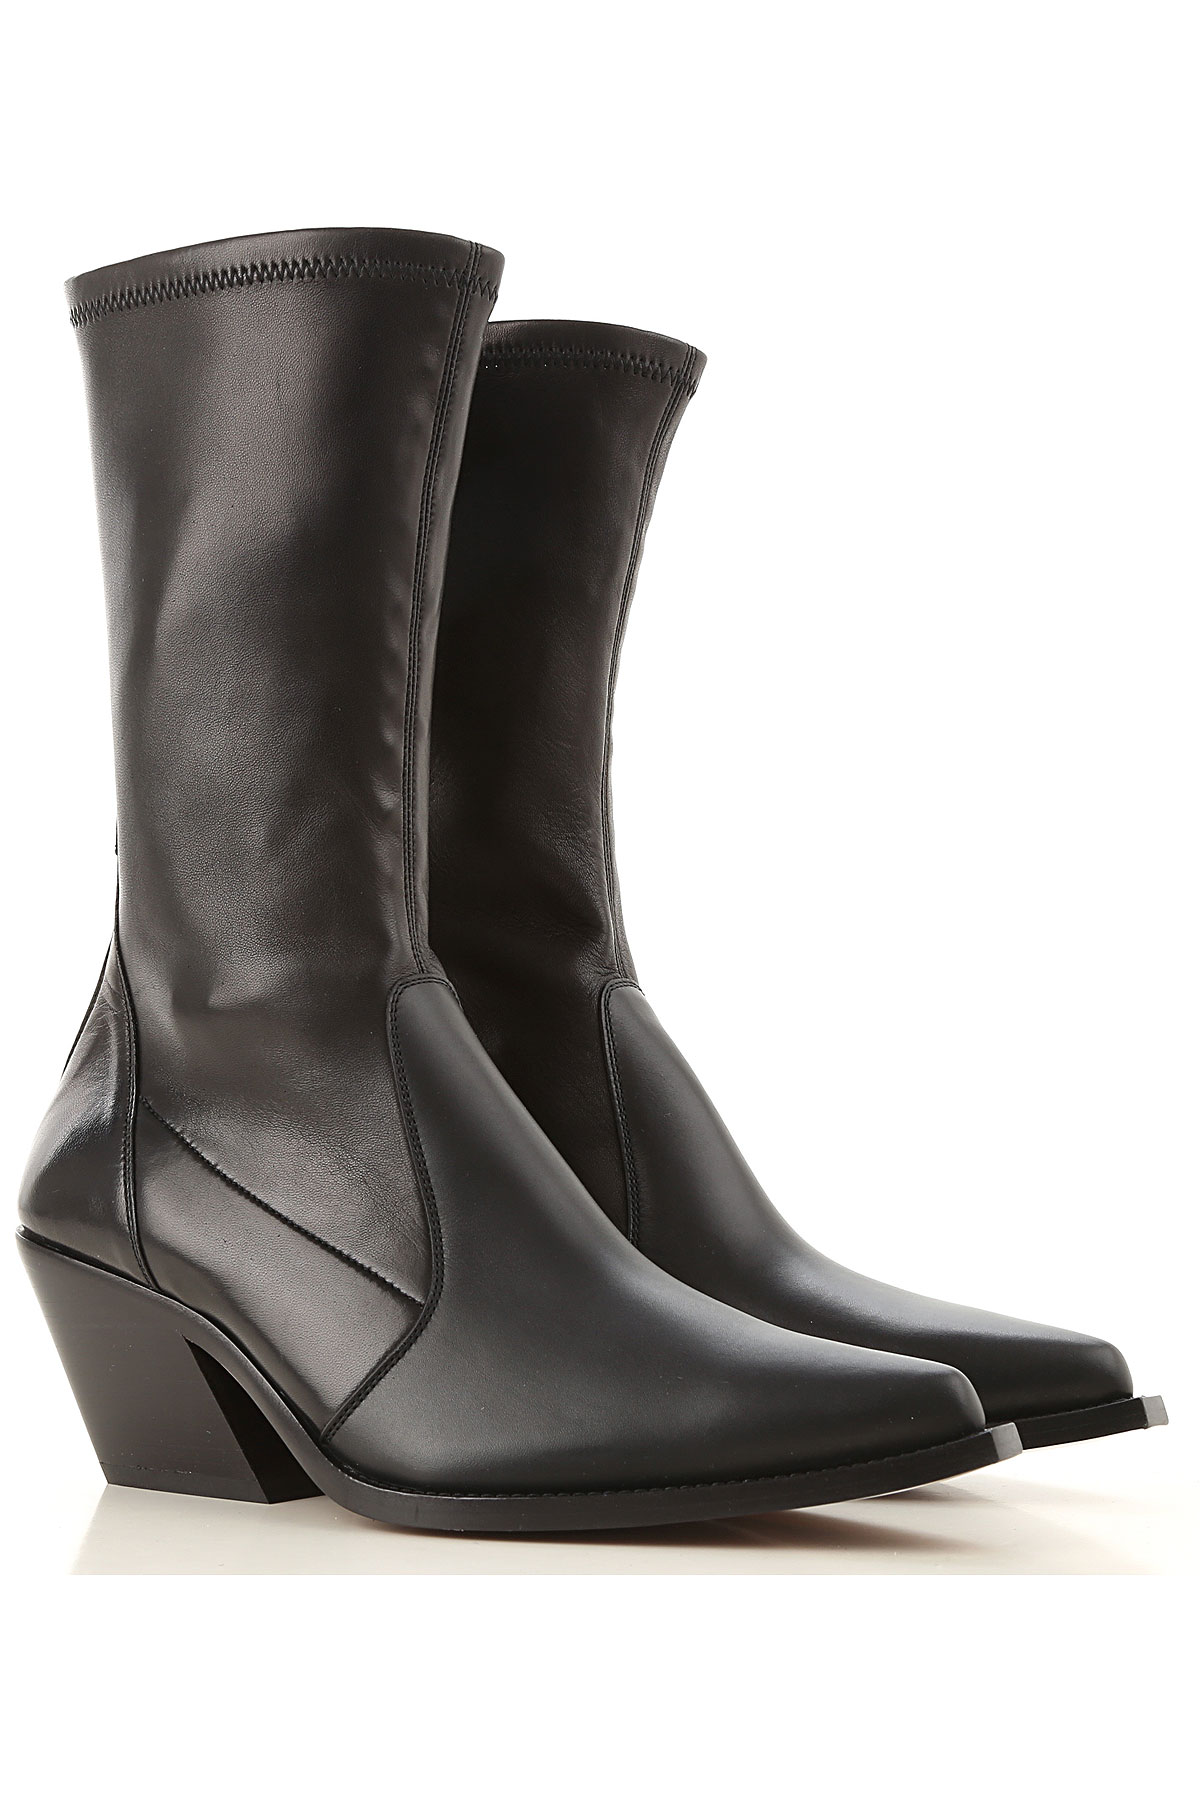 Givenchy Boots for Women, Booties On Sale in Outlet, Black, Leather, 2019, 10 7 8